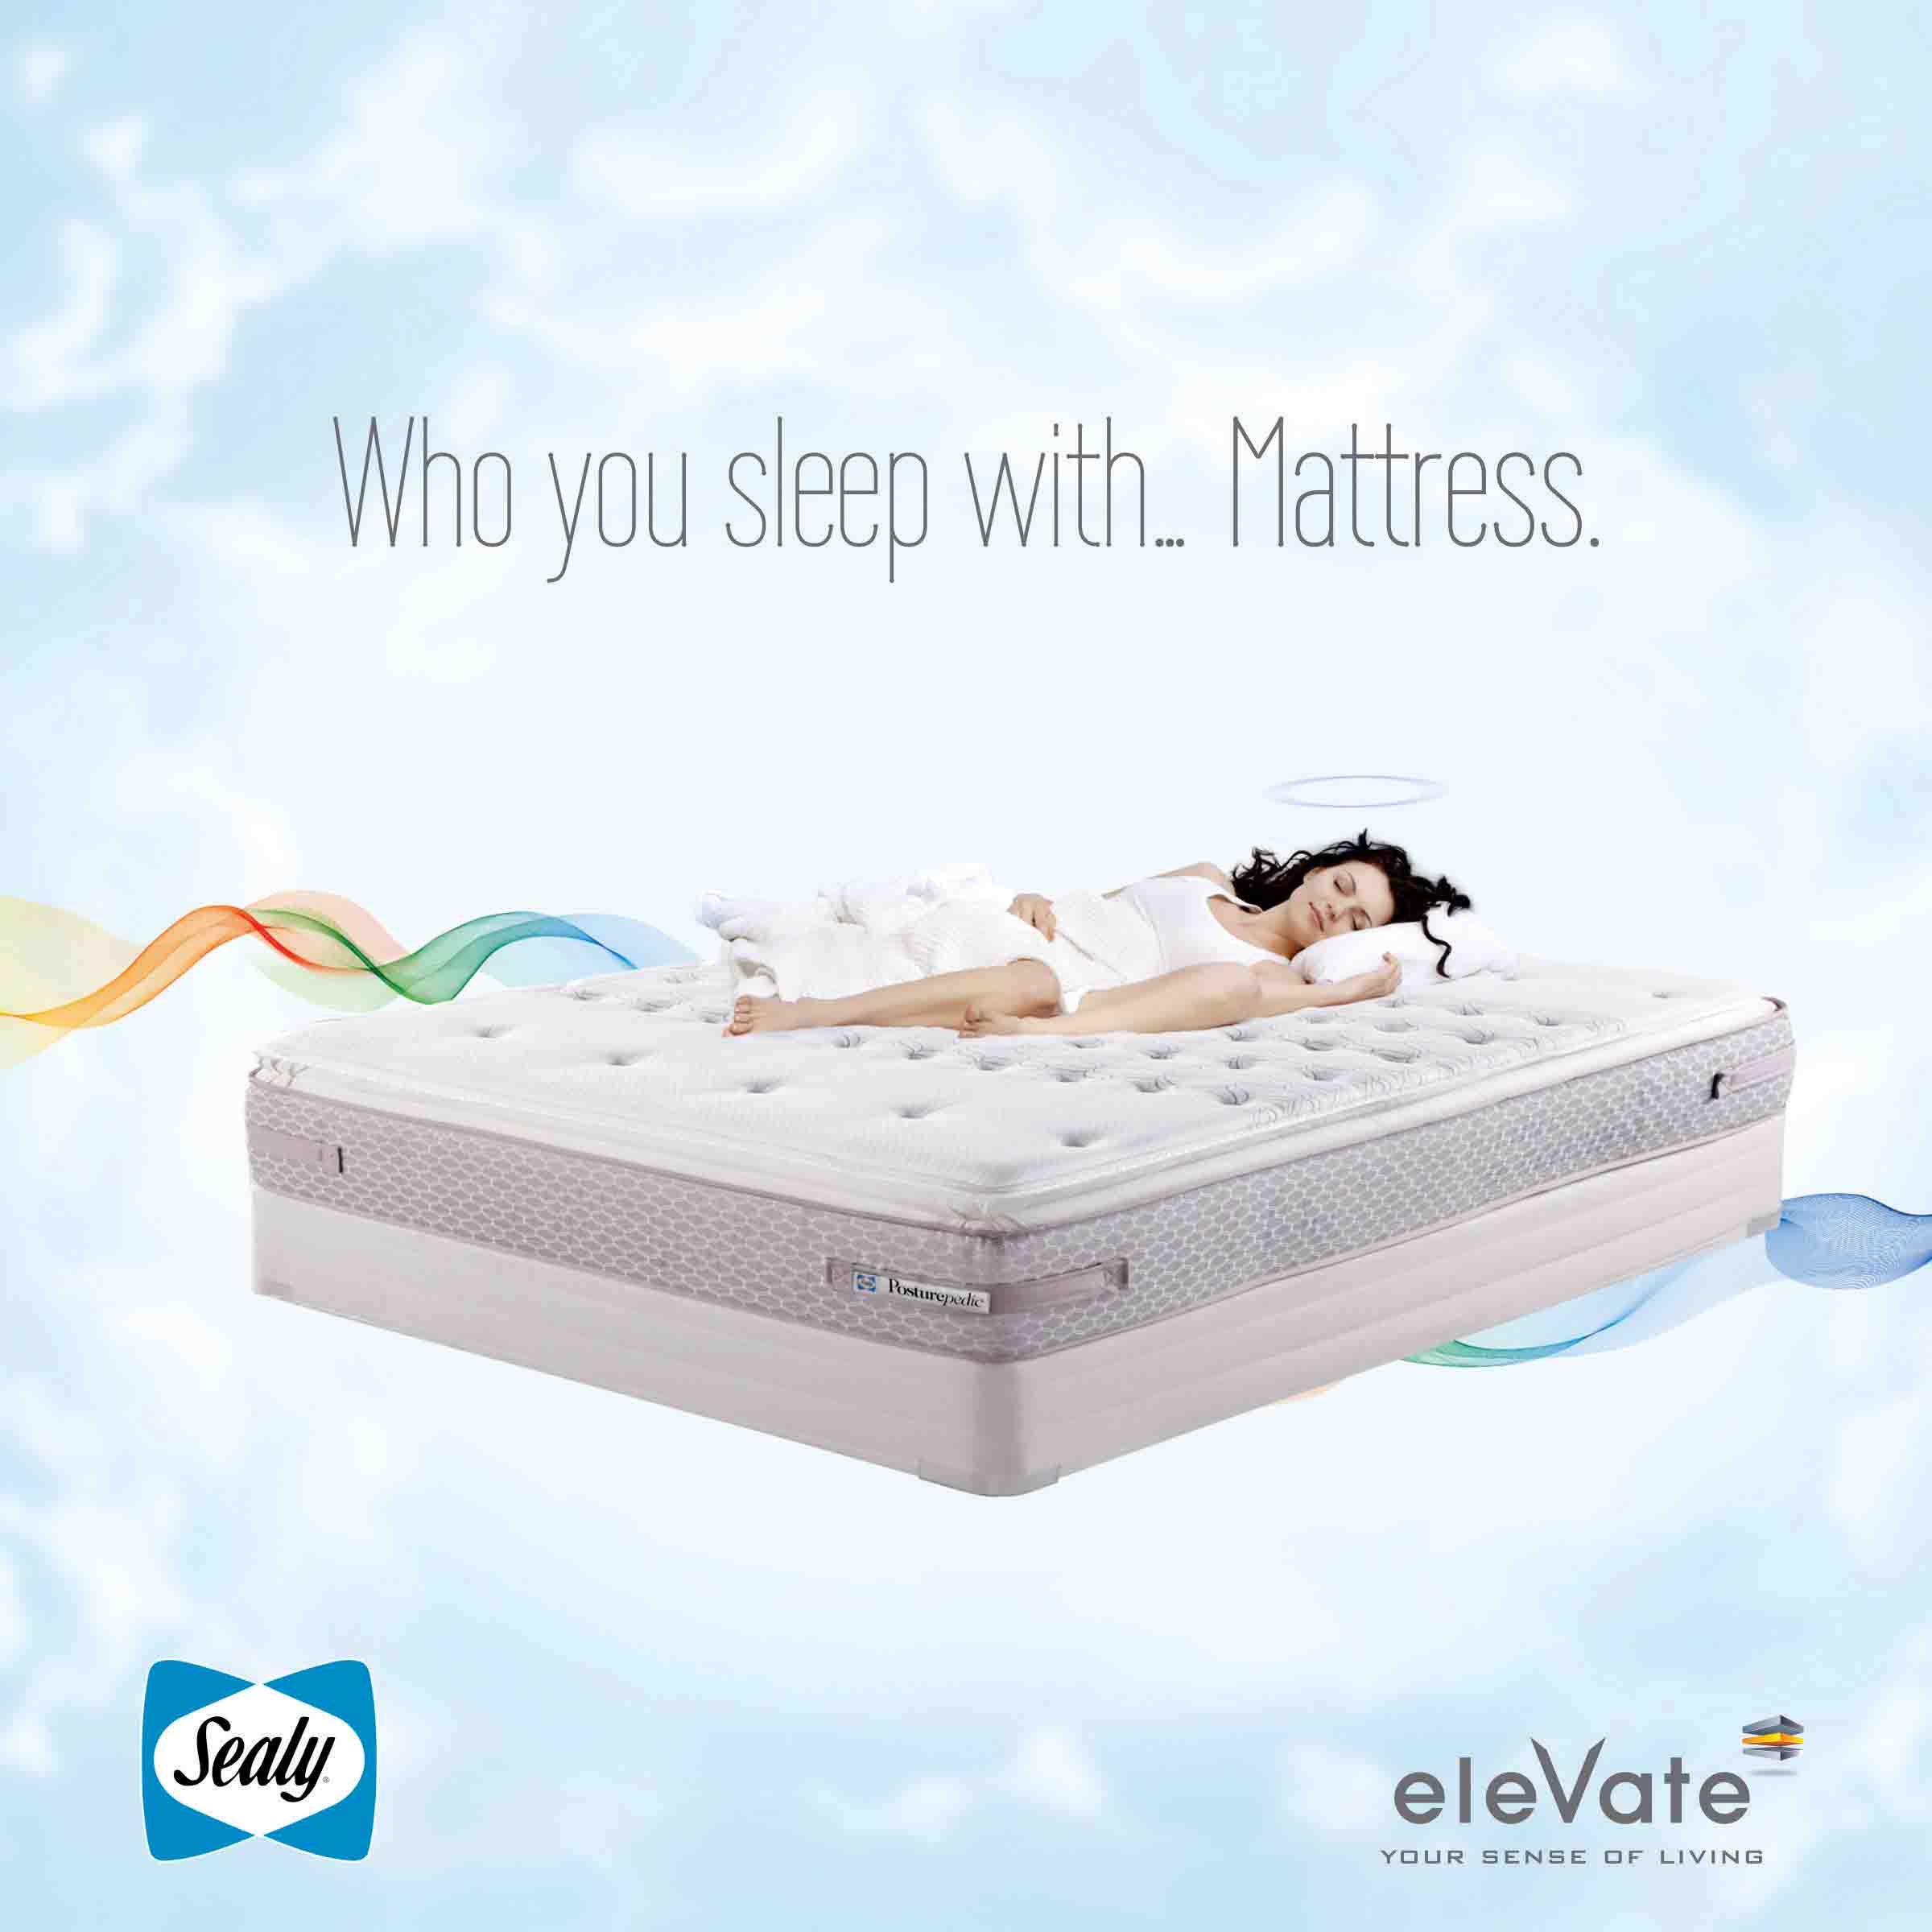 zupifhbszrc-sealy,-elevate,-best-mattress-ad,-what's-in-a-name-creatives-min